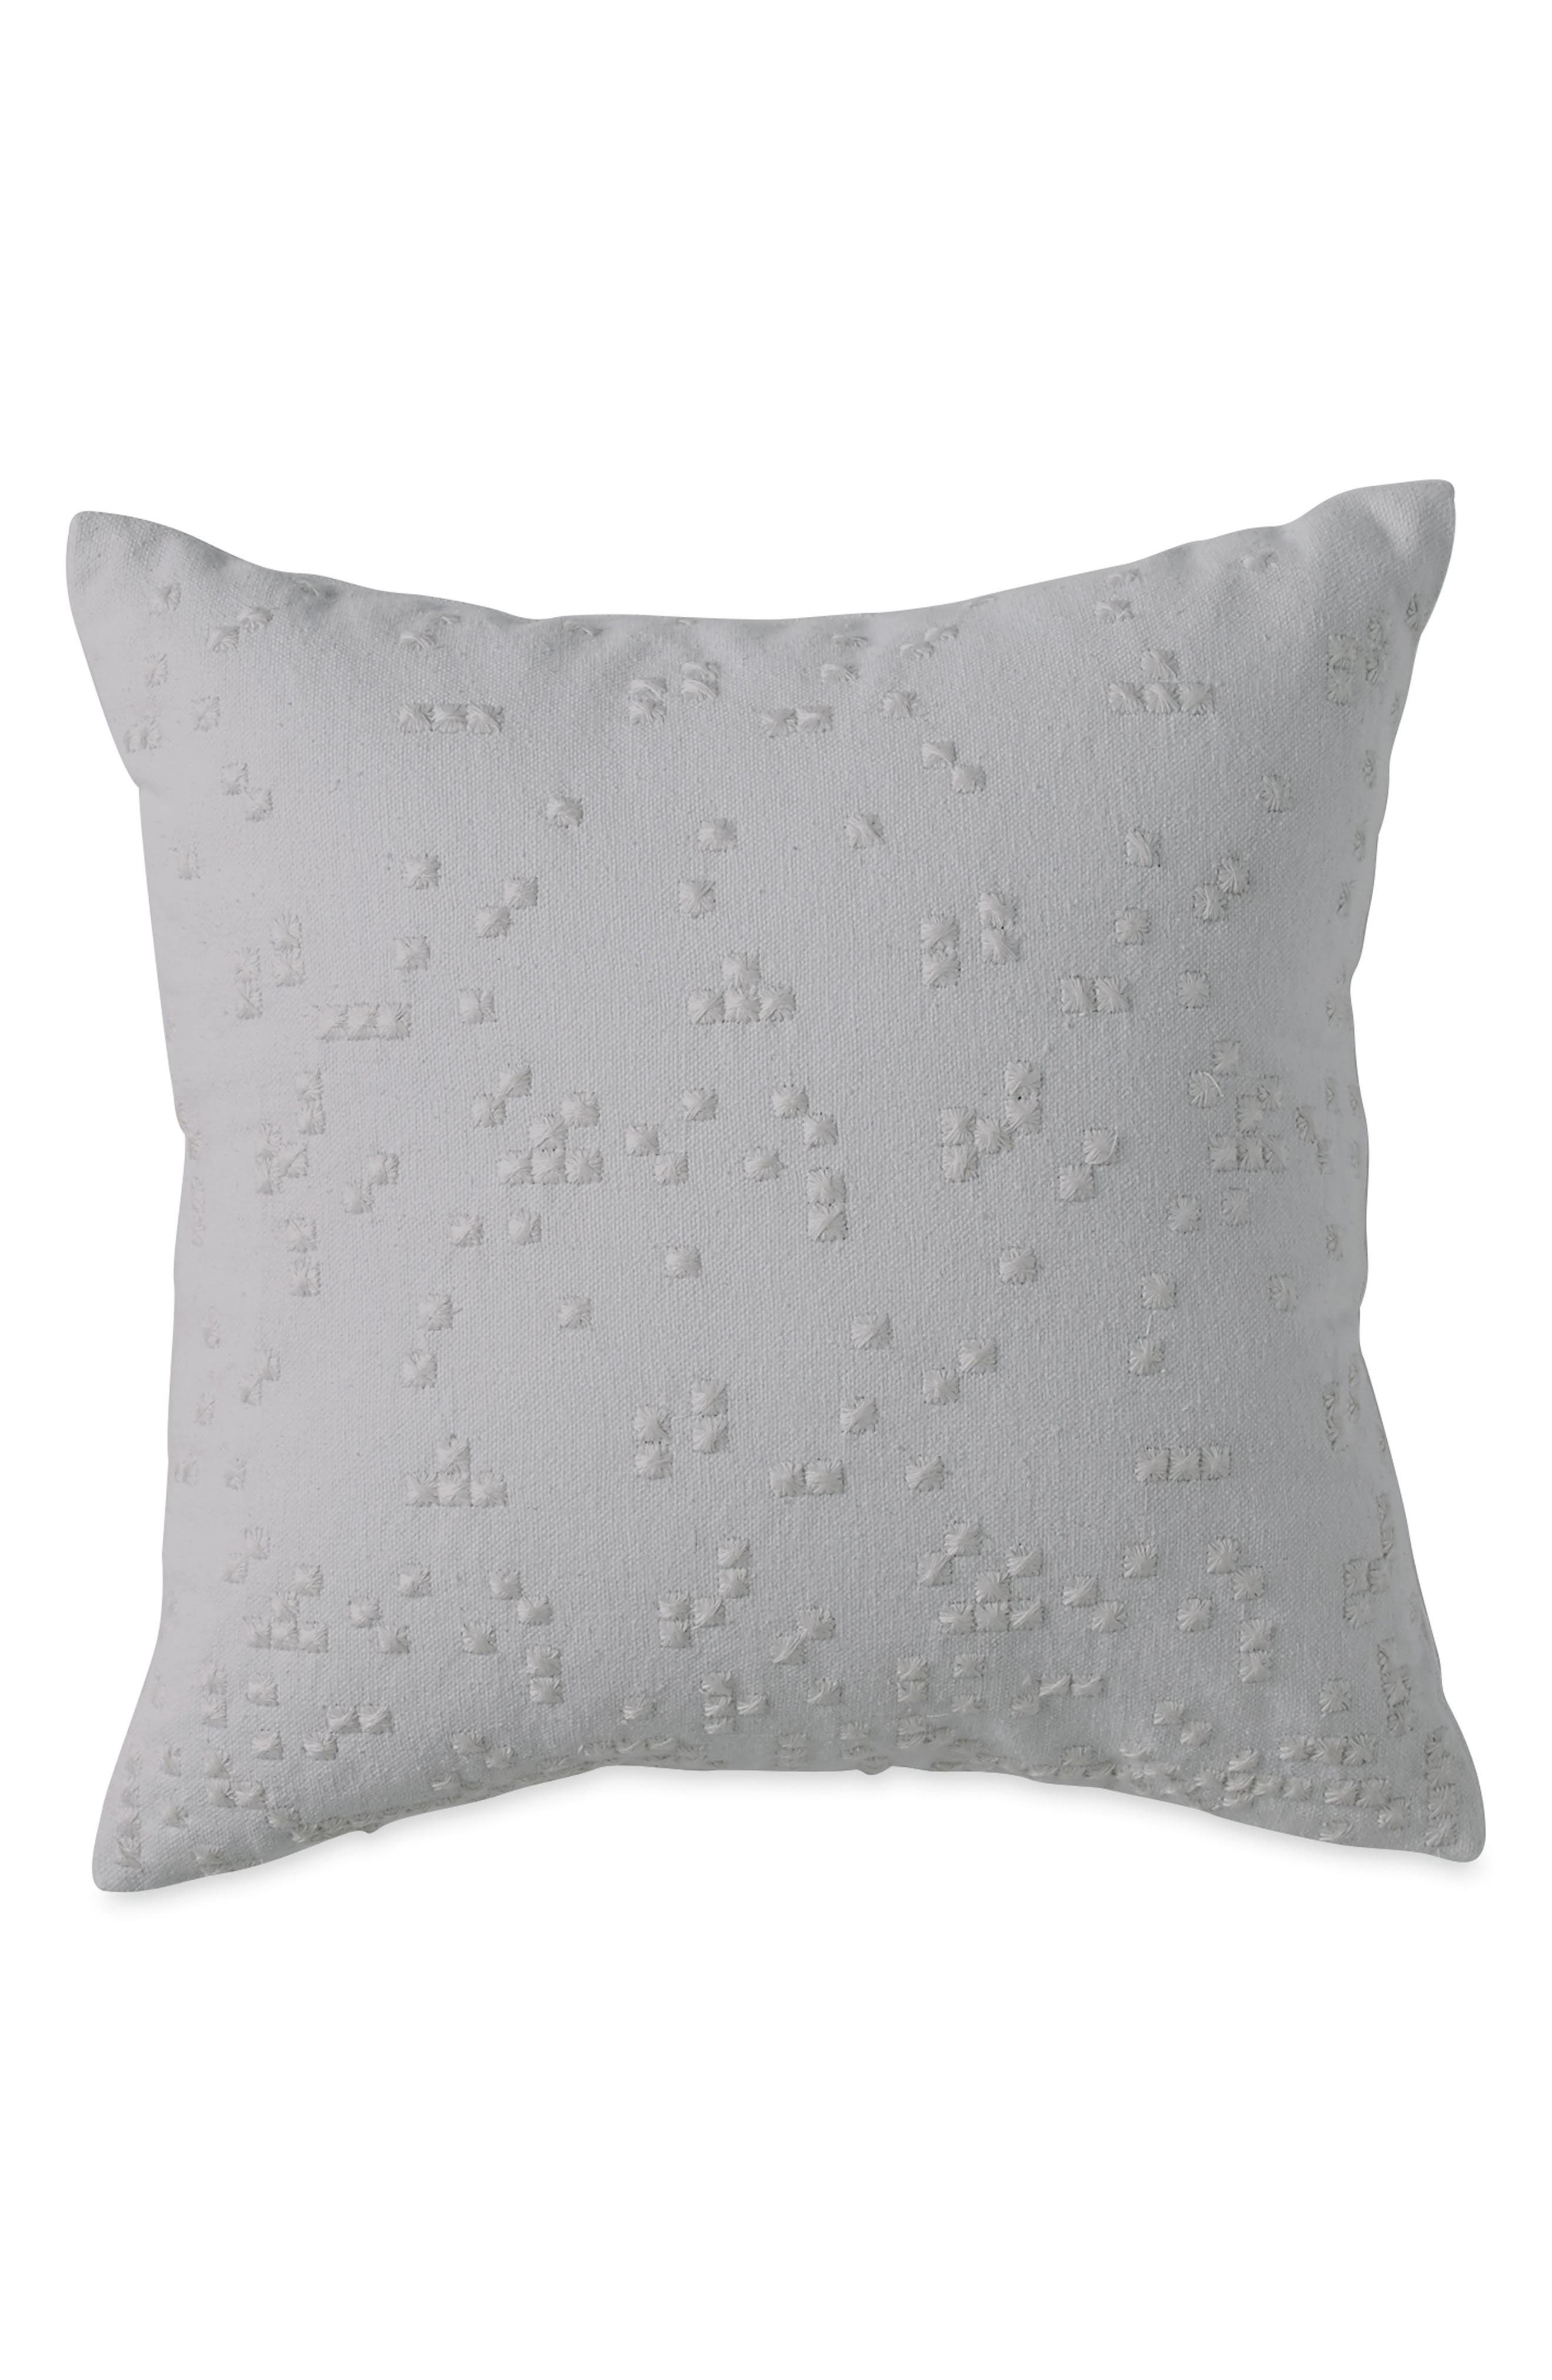 DKNY,                             Embroidered Accent Pillow,                             Main thumbnail 1, color,                             GREY